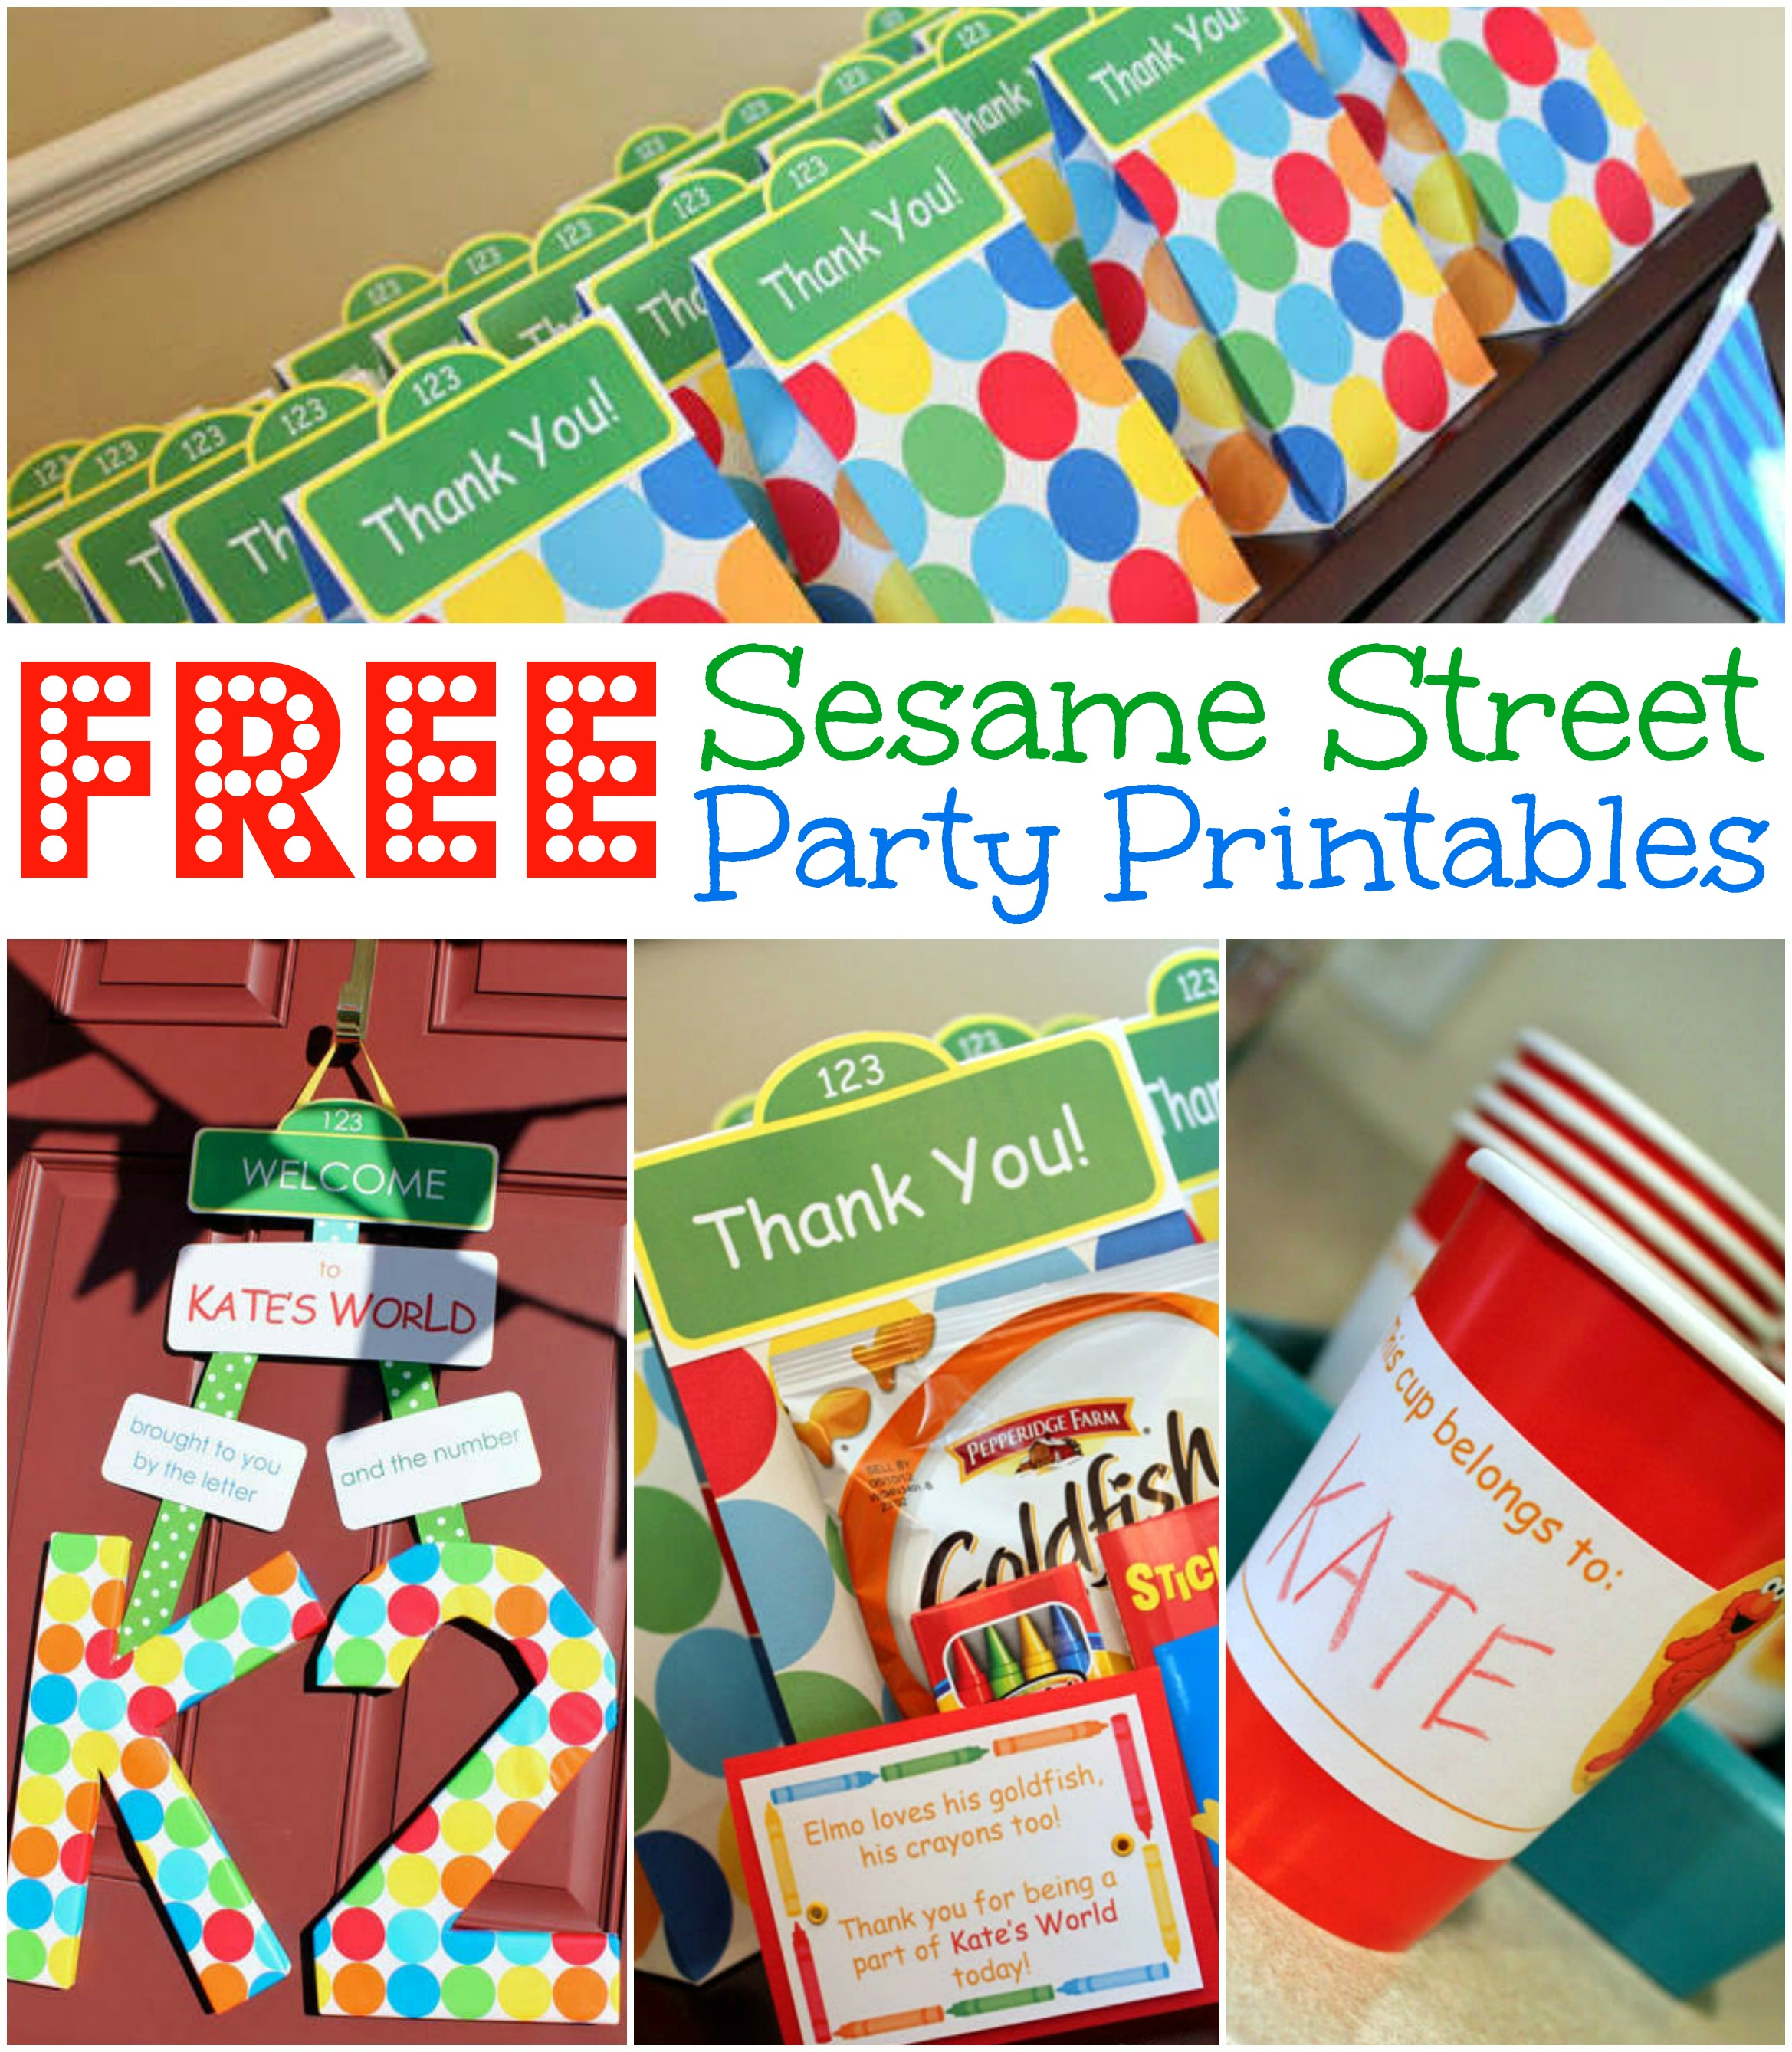 5 Images of Sesame Street Birthday Party Printables